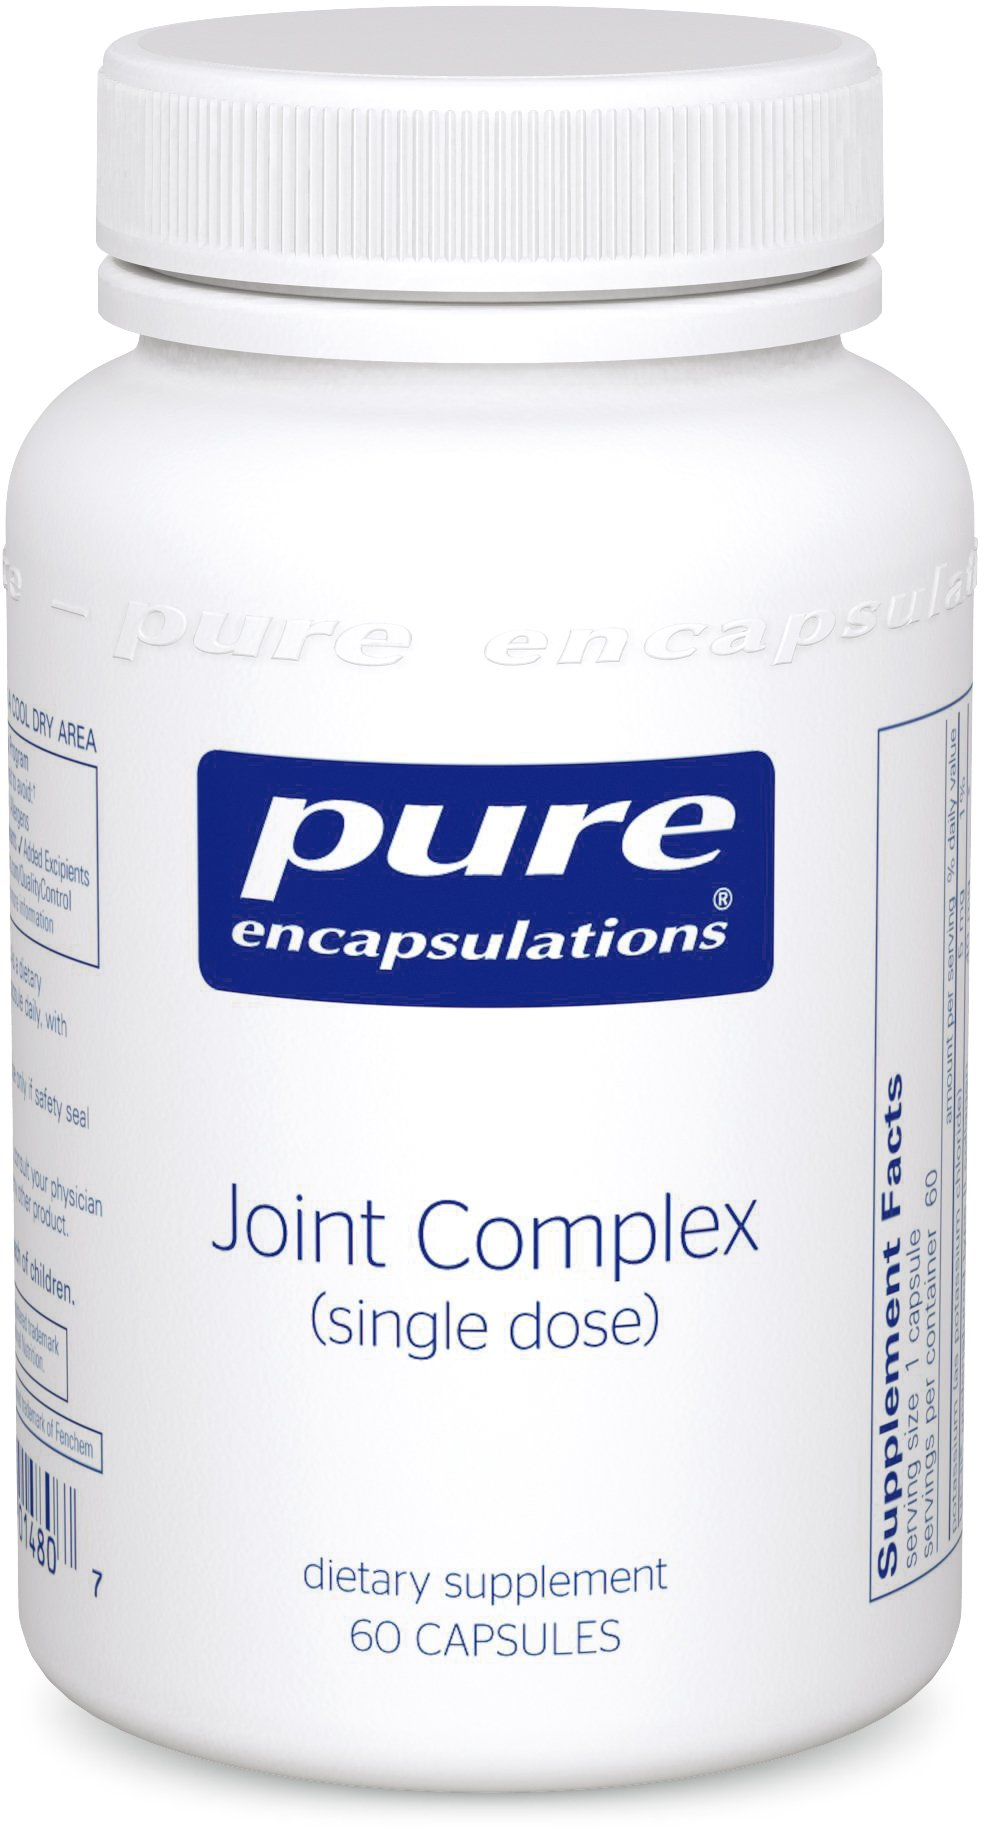 Pure Encapsulations - Joint Complex (Single Dose) - One-A-Day Formula Supports Joint Function and Comfort* - 60 Capsules